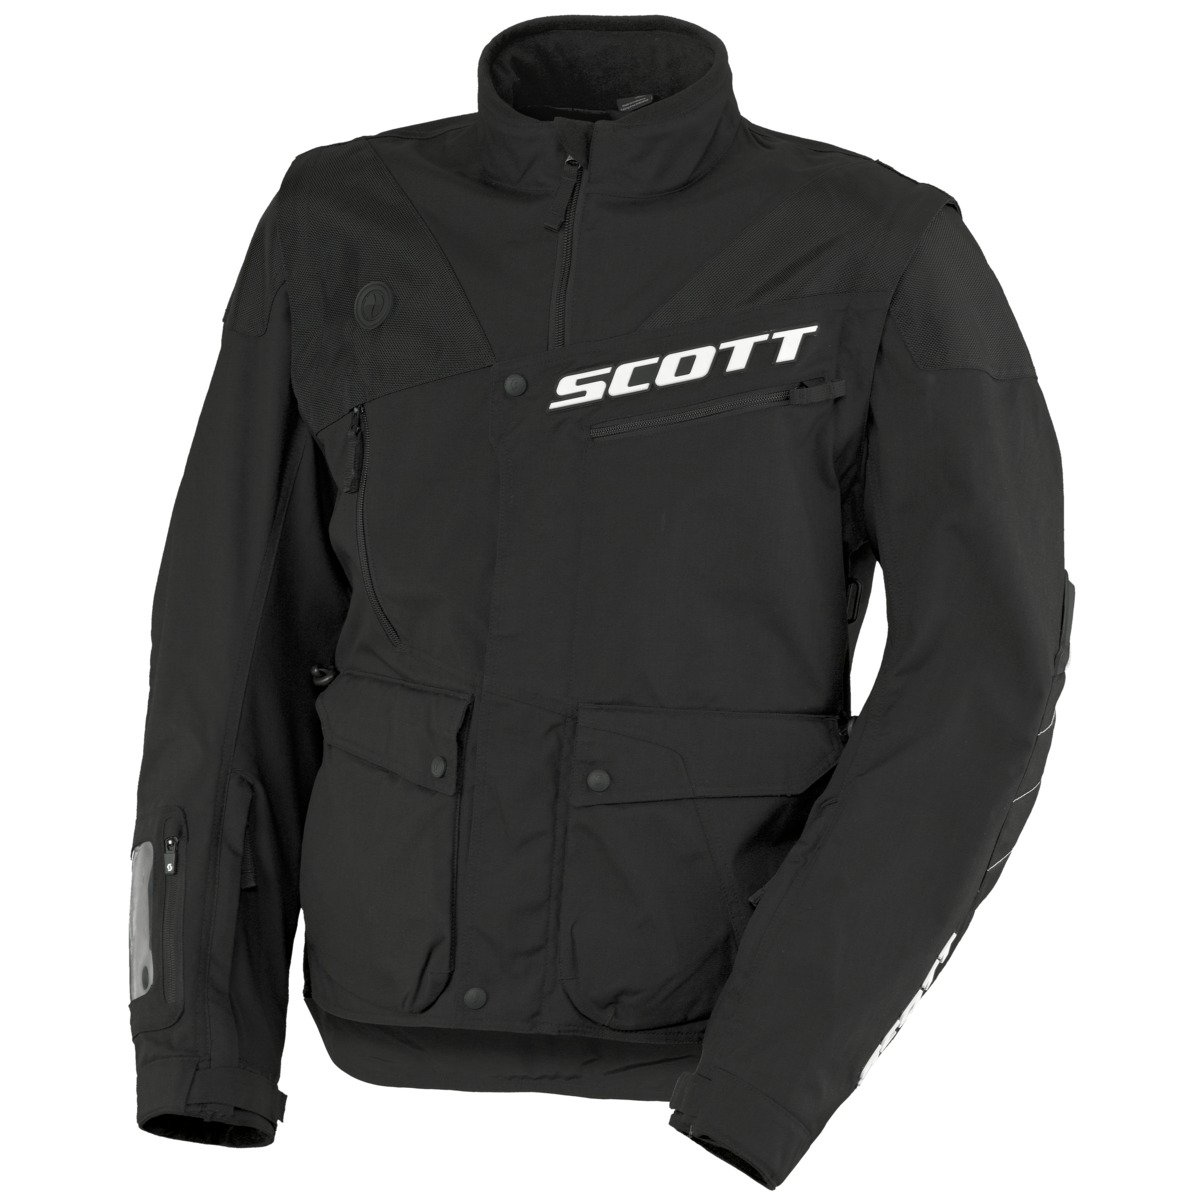 Scott 350 Enduro MX/Cross - Chaqueta de moto negro/blanco ...